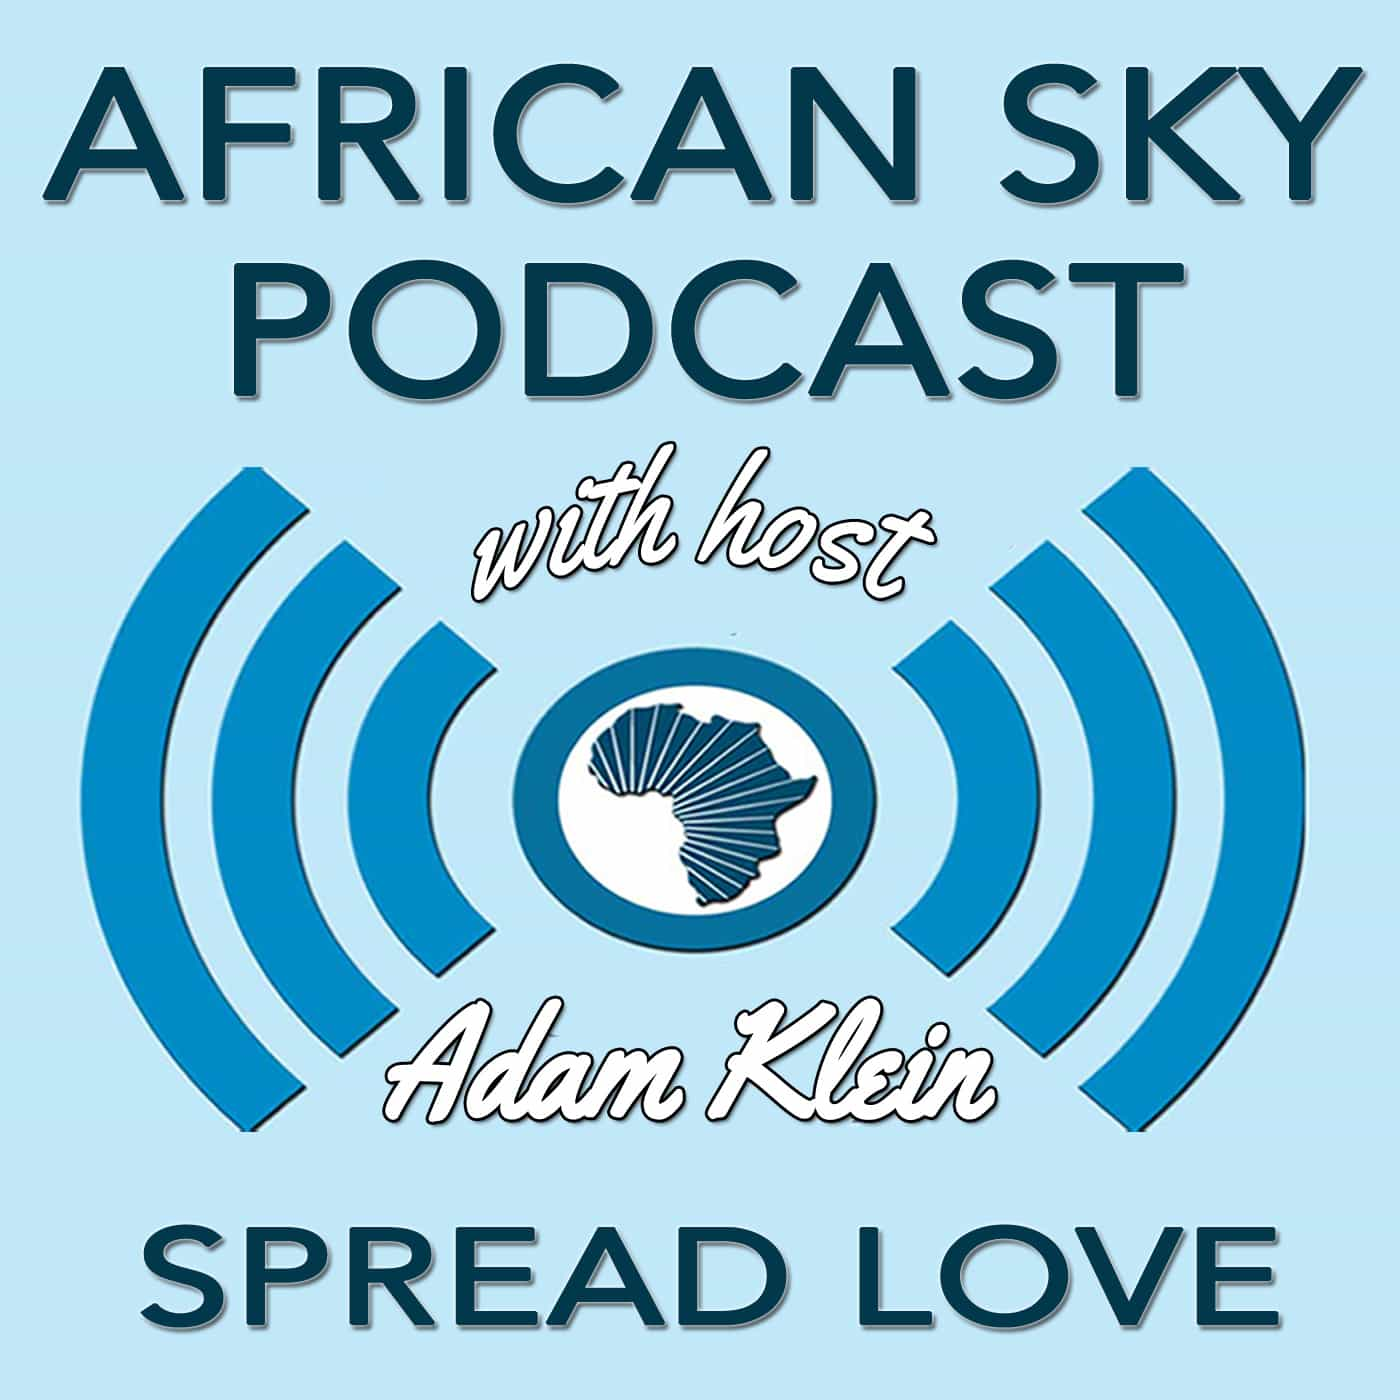 The African Sky Podcast (with host Adam Klein)